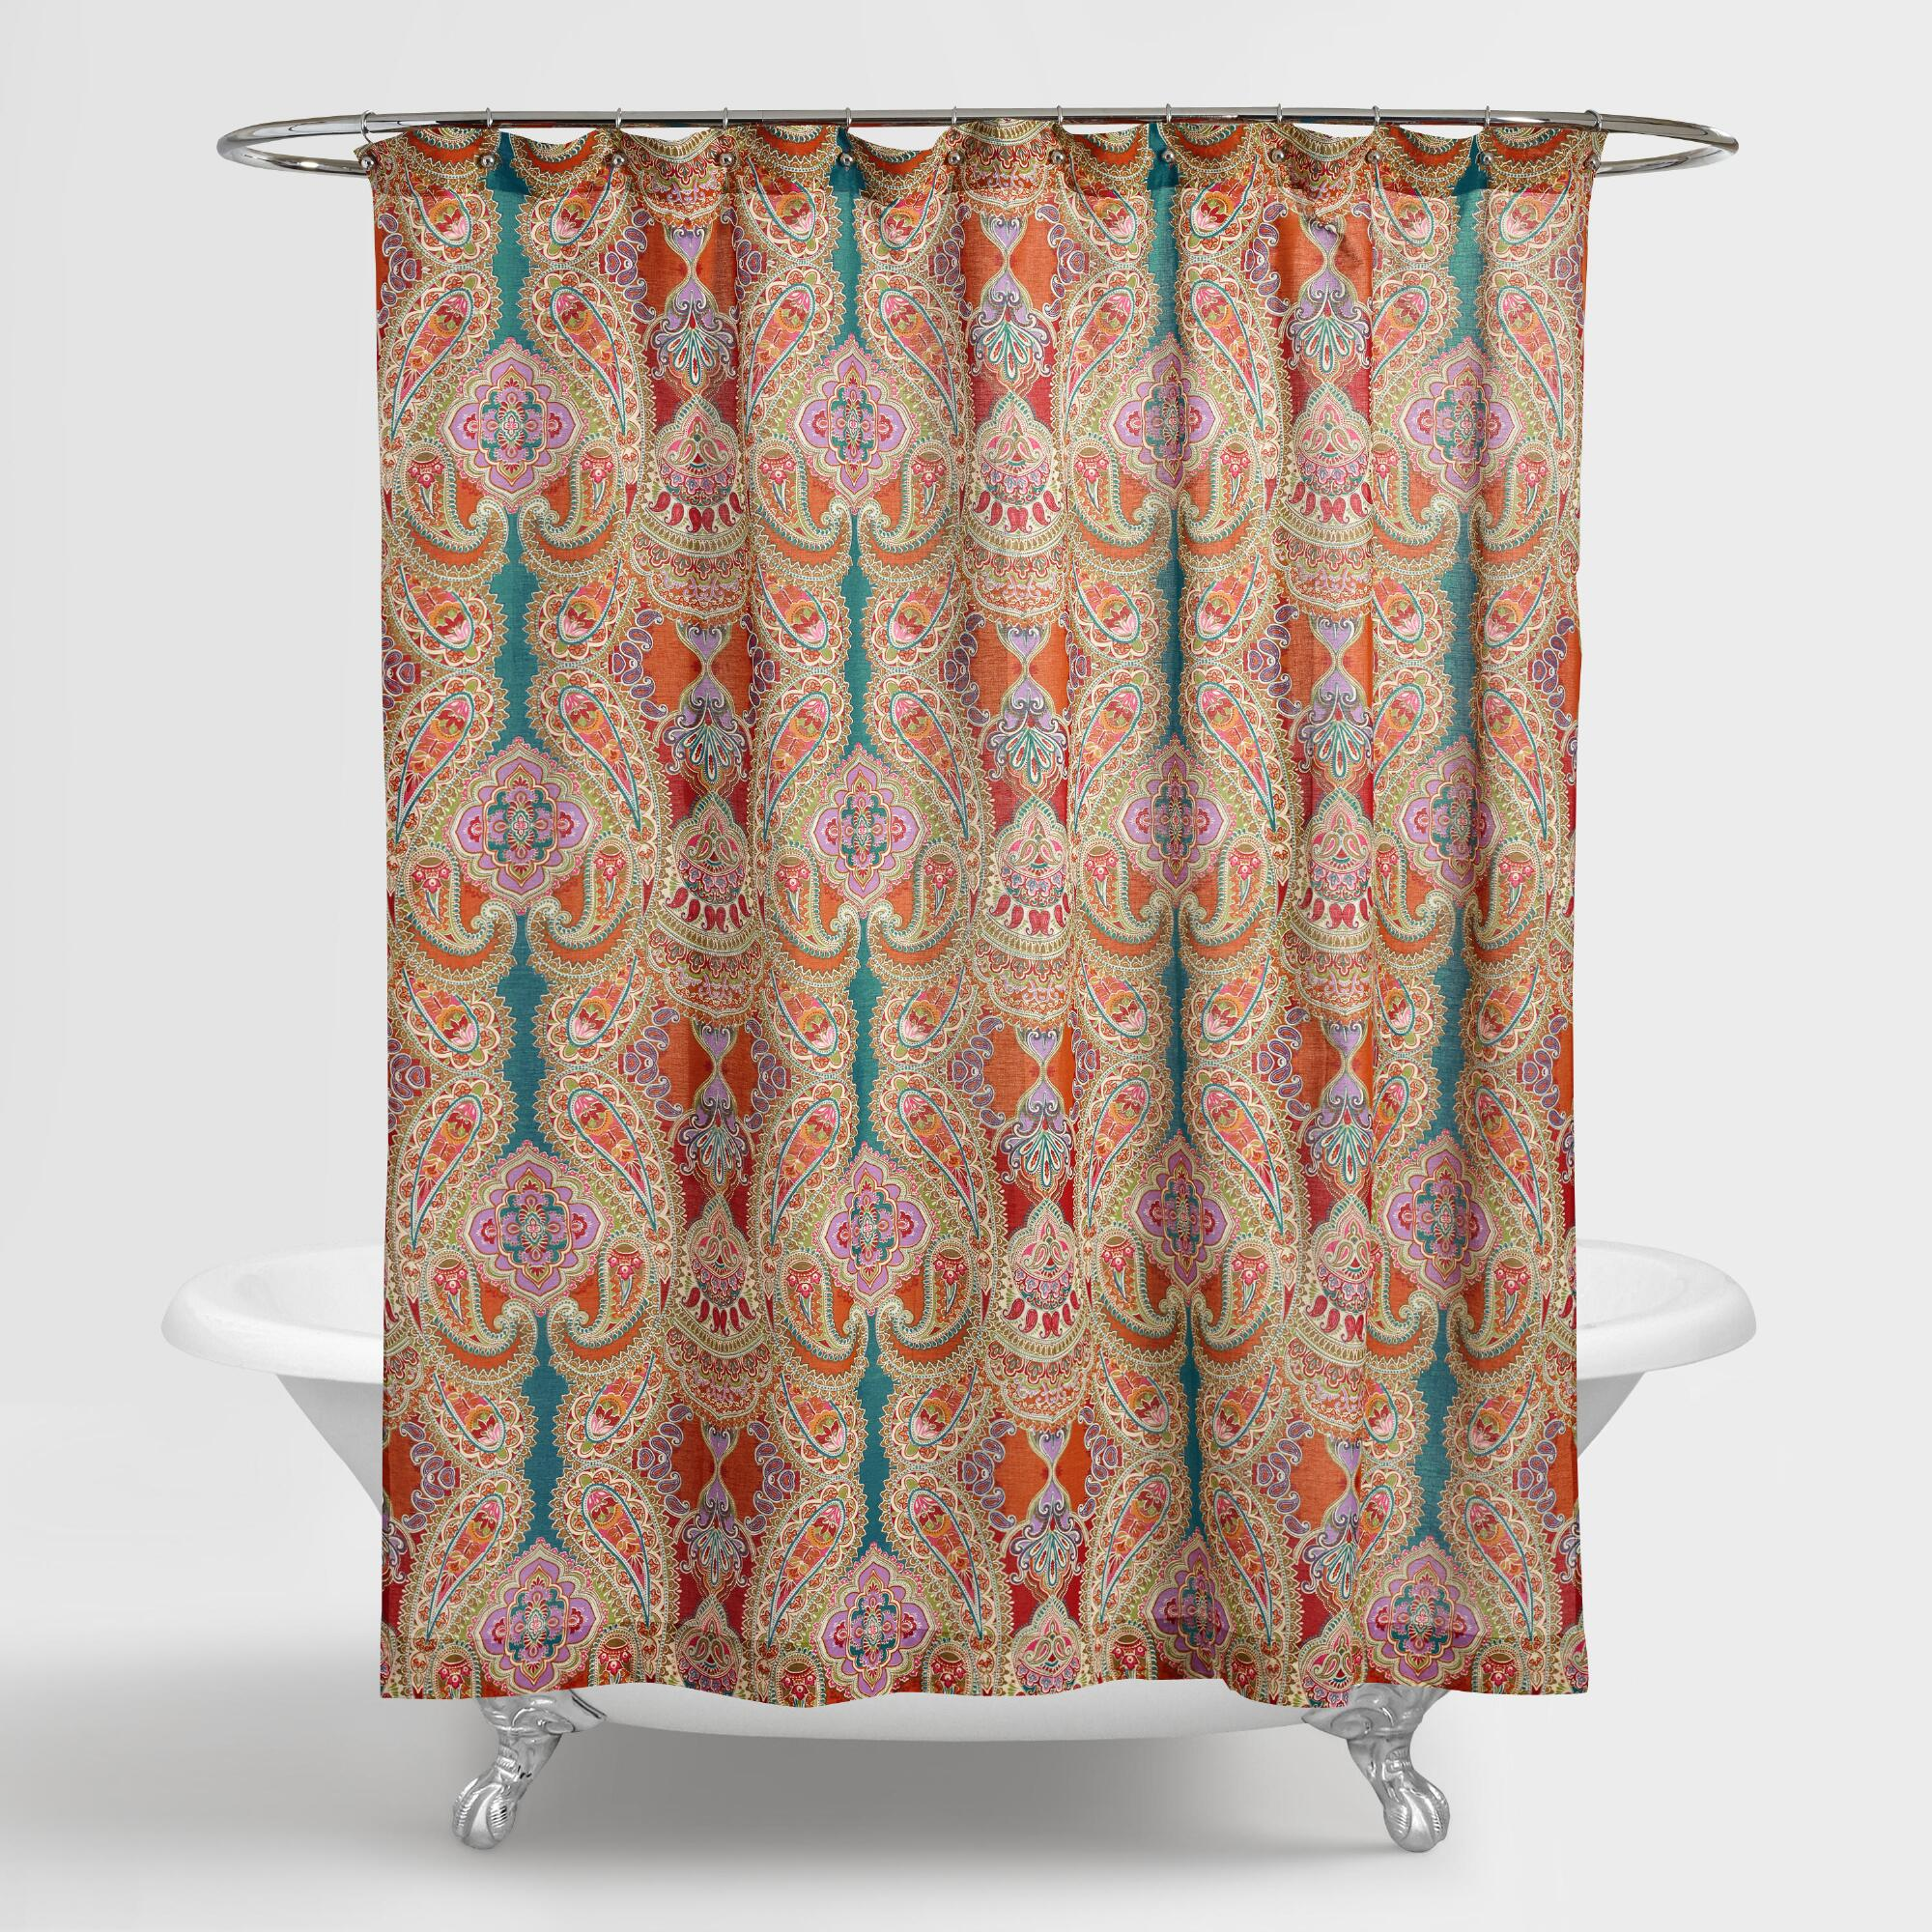 Crochet shower curtains - Paisley Venice Shower Curtain